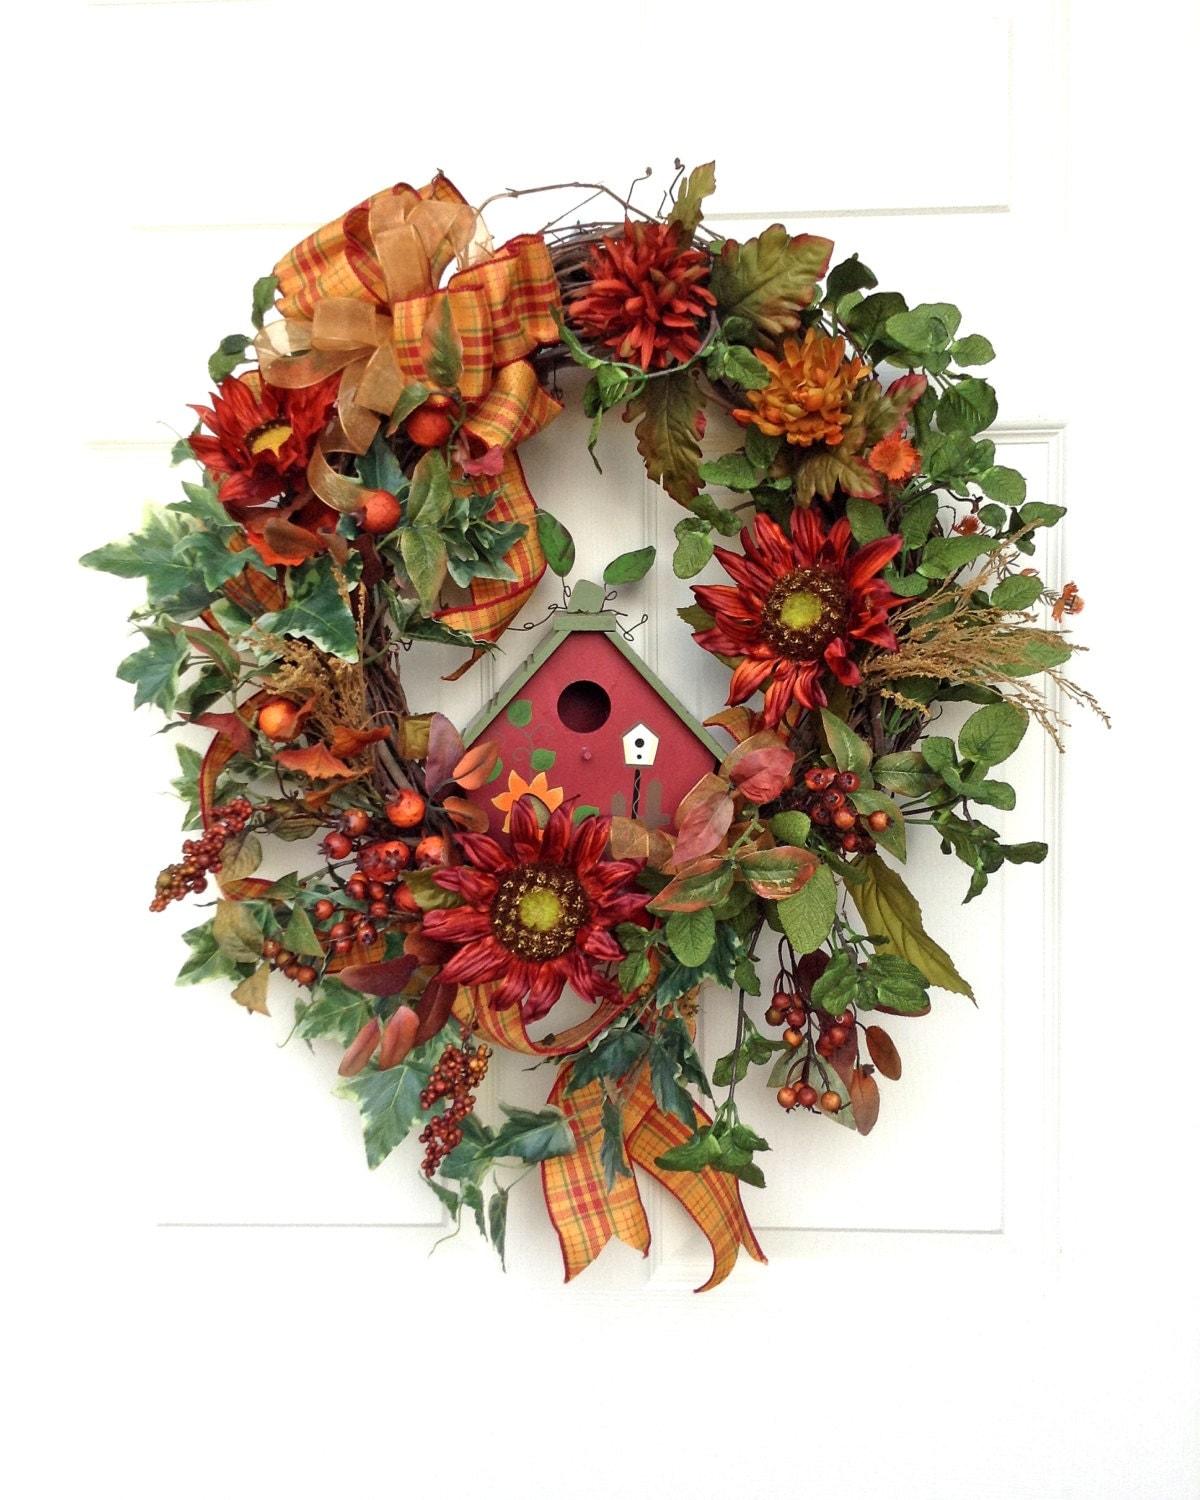 Xl sunflower fall wreath fall decor fall wreaths for door Fall autumn door wreaths